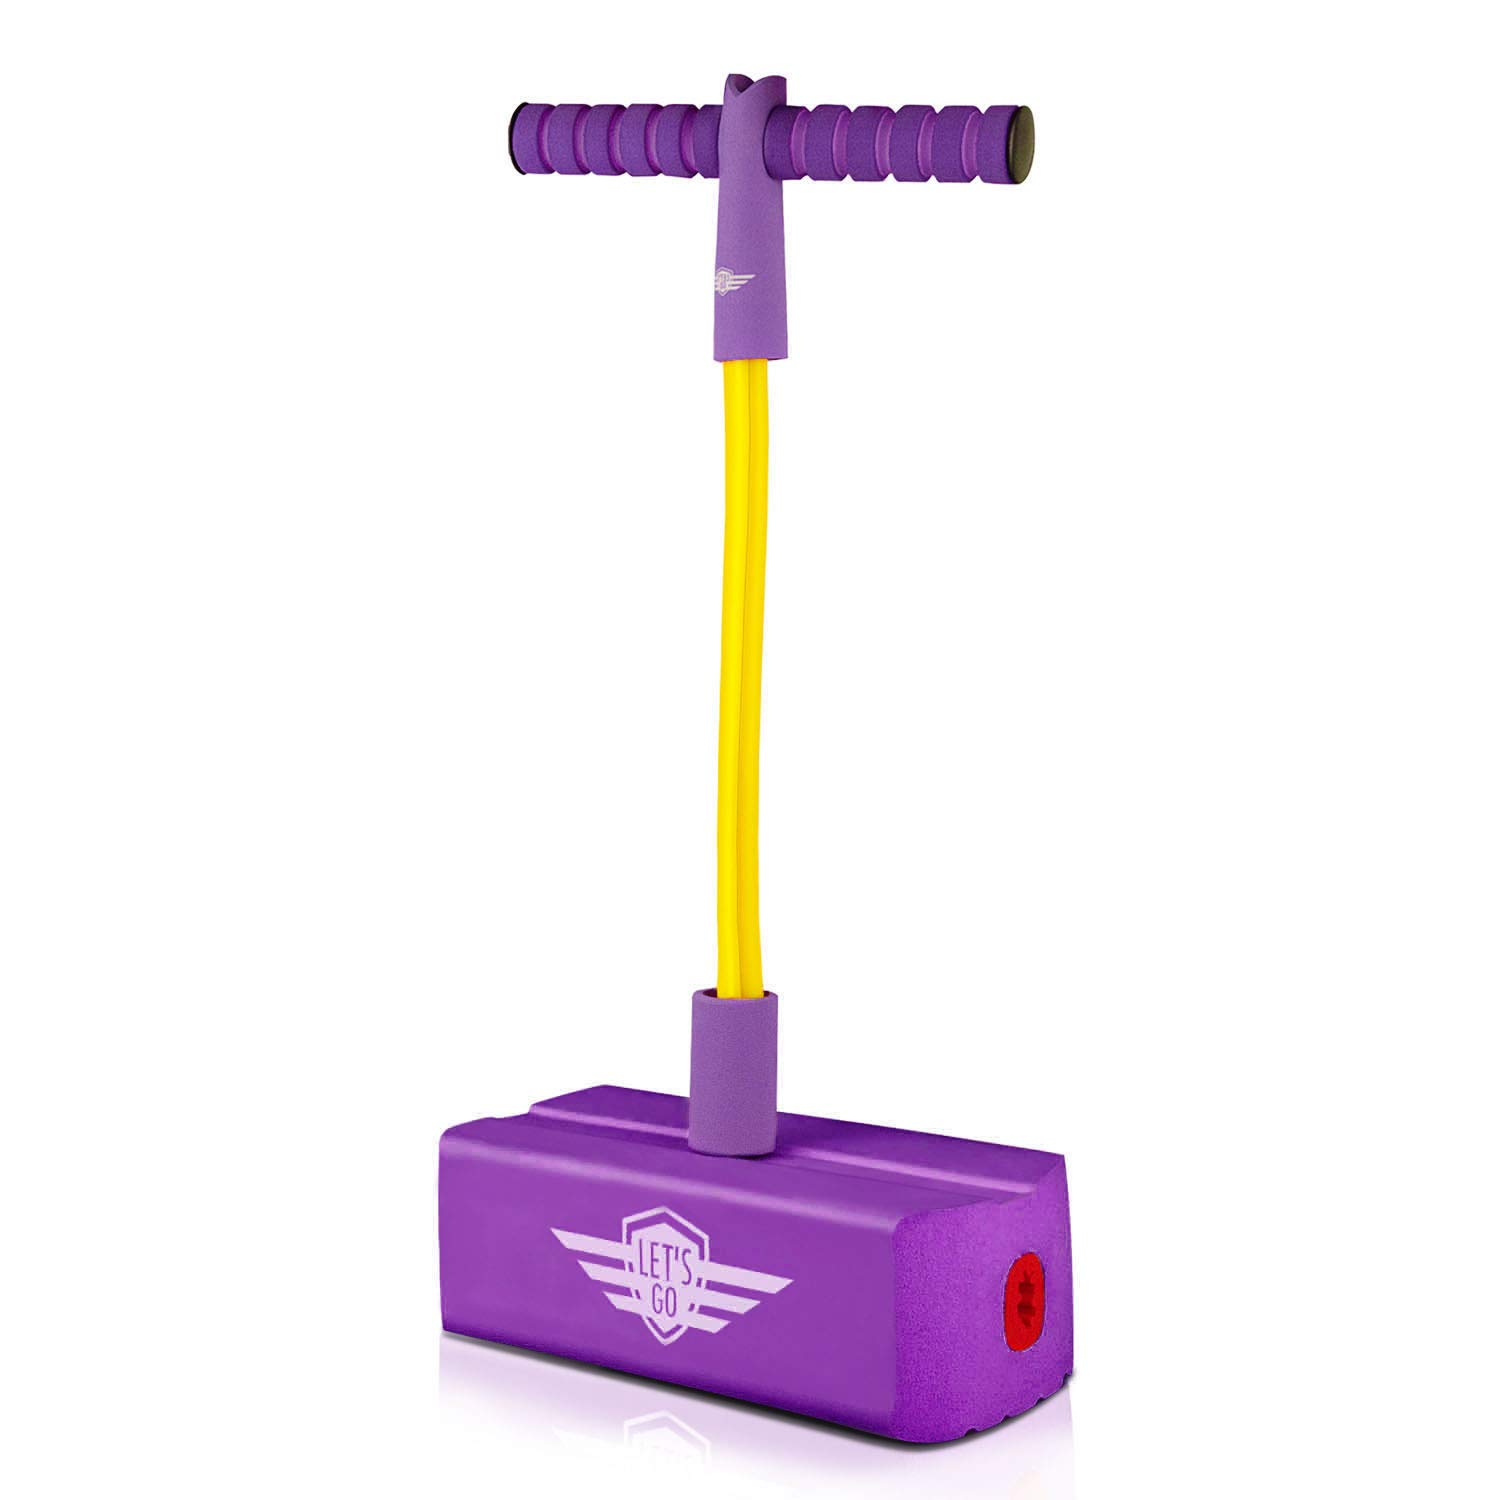 superwinky Boys Toys Age 4-5, Foam Pogo Stick Jumper for Kids Gifts for Birthday Presents Gifts for 3-12 Year Old Girls Toys Age 3-12 Christmas Stocking Stuffers Stocking Fillers Purple WKUSFPJ03 by superwinky